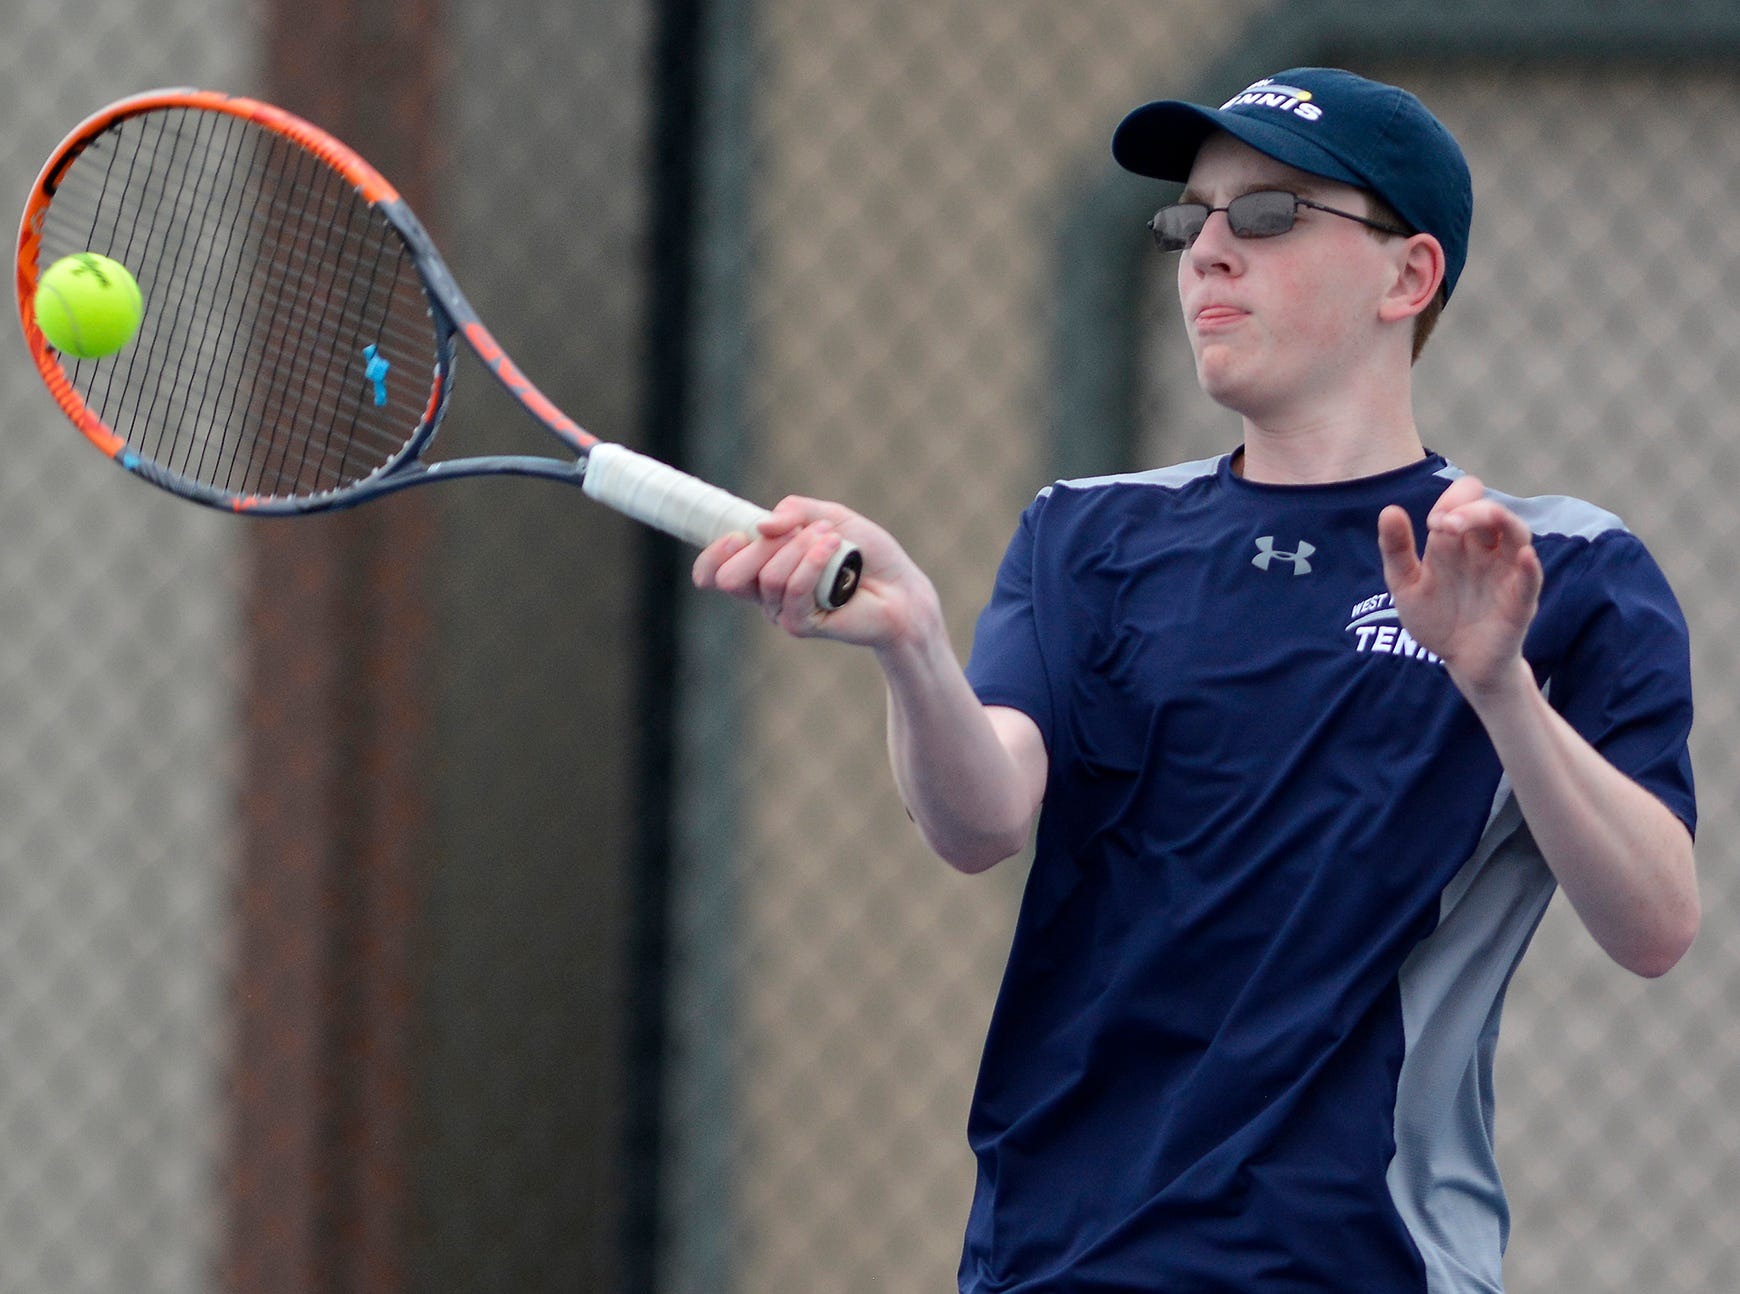 Jack Citrone of West York plays Antonio Corona of Hanover in the numbest two seed match, Monday, April 8, 2019.